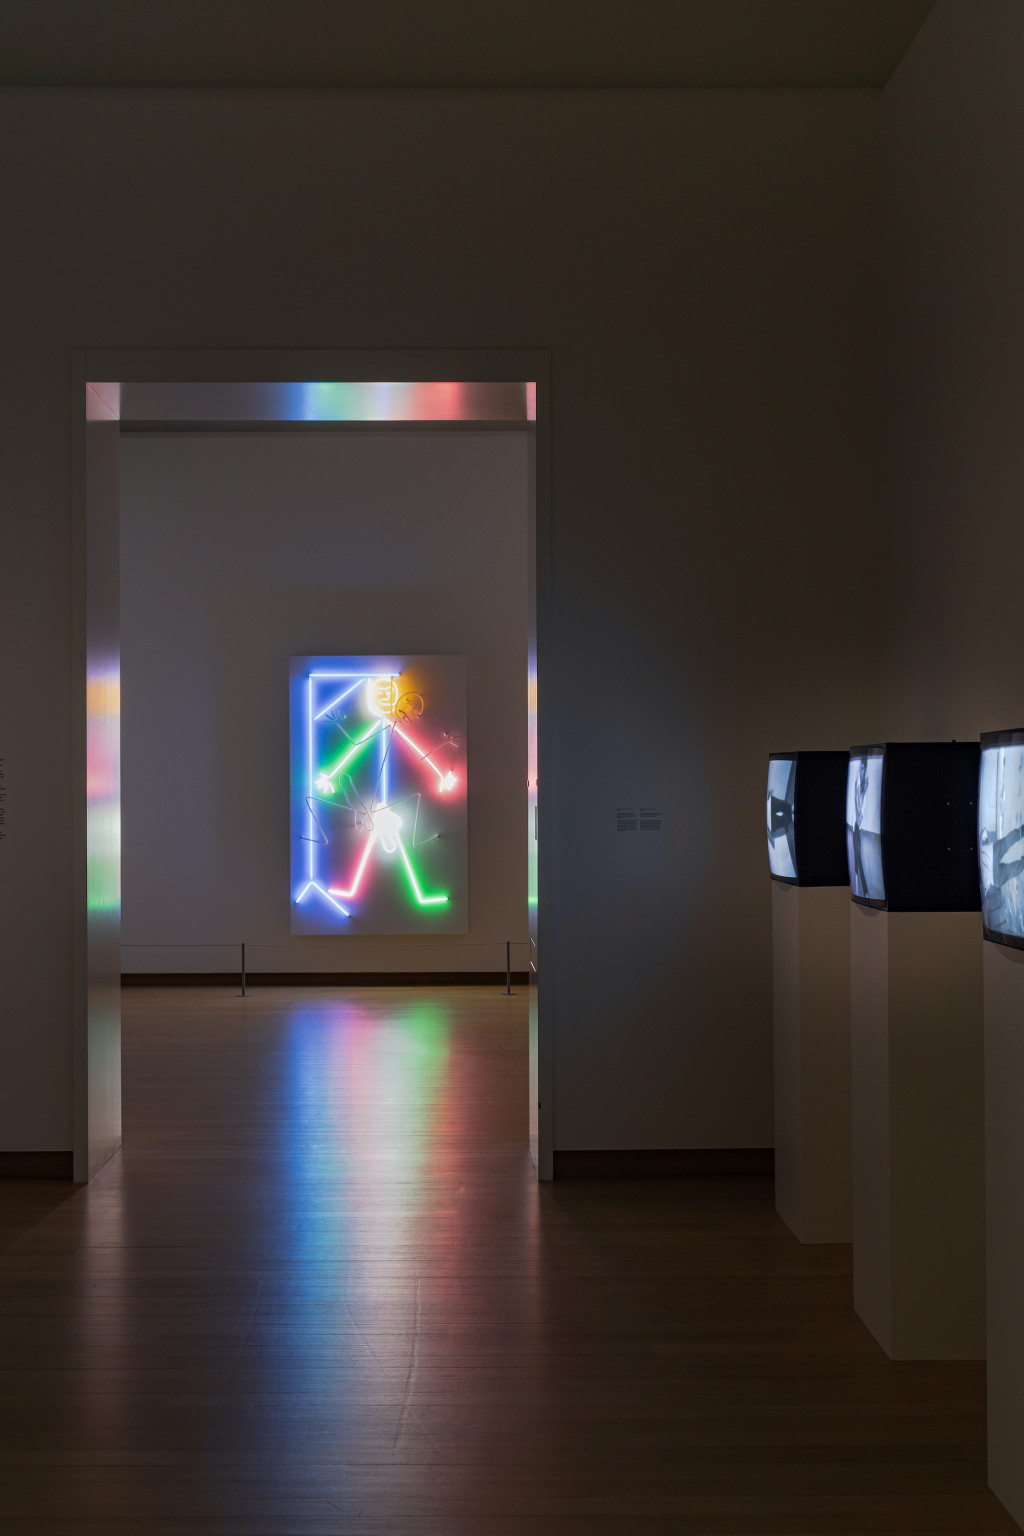 Installation view. Left: Hanged Man, 1985; right: Bouncing in the Corner, No.1 (1968), Violin tuned D E A D (1969), Wall-Floor Positions (1968), Electronic Arts Intermix, (EAI), New York, NY. Photo: Peter Tijhuis © 2021 Bruce Nauman